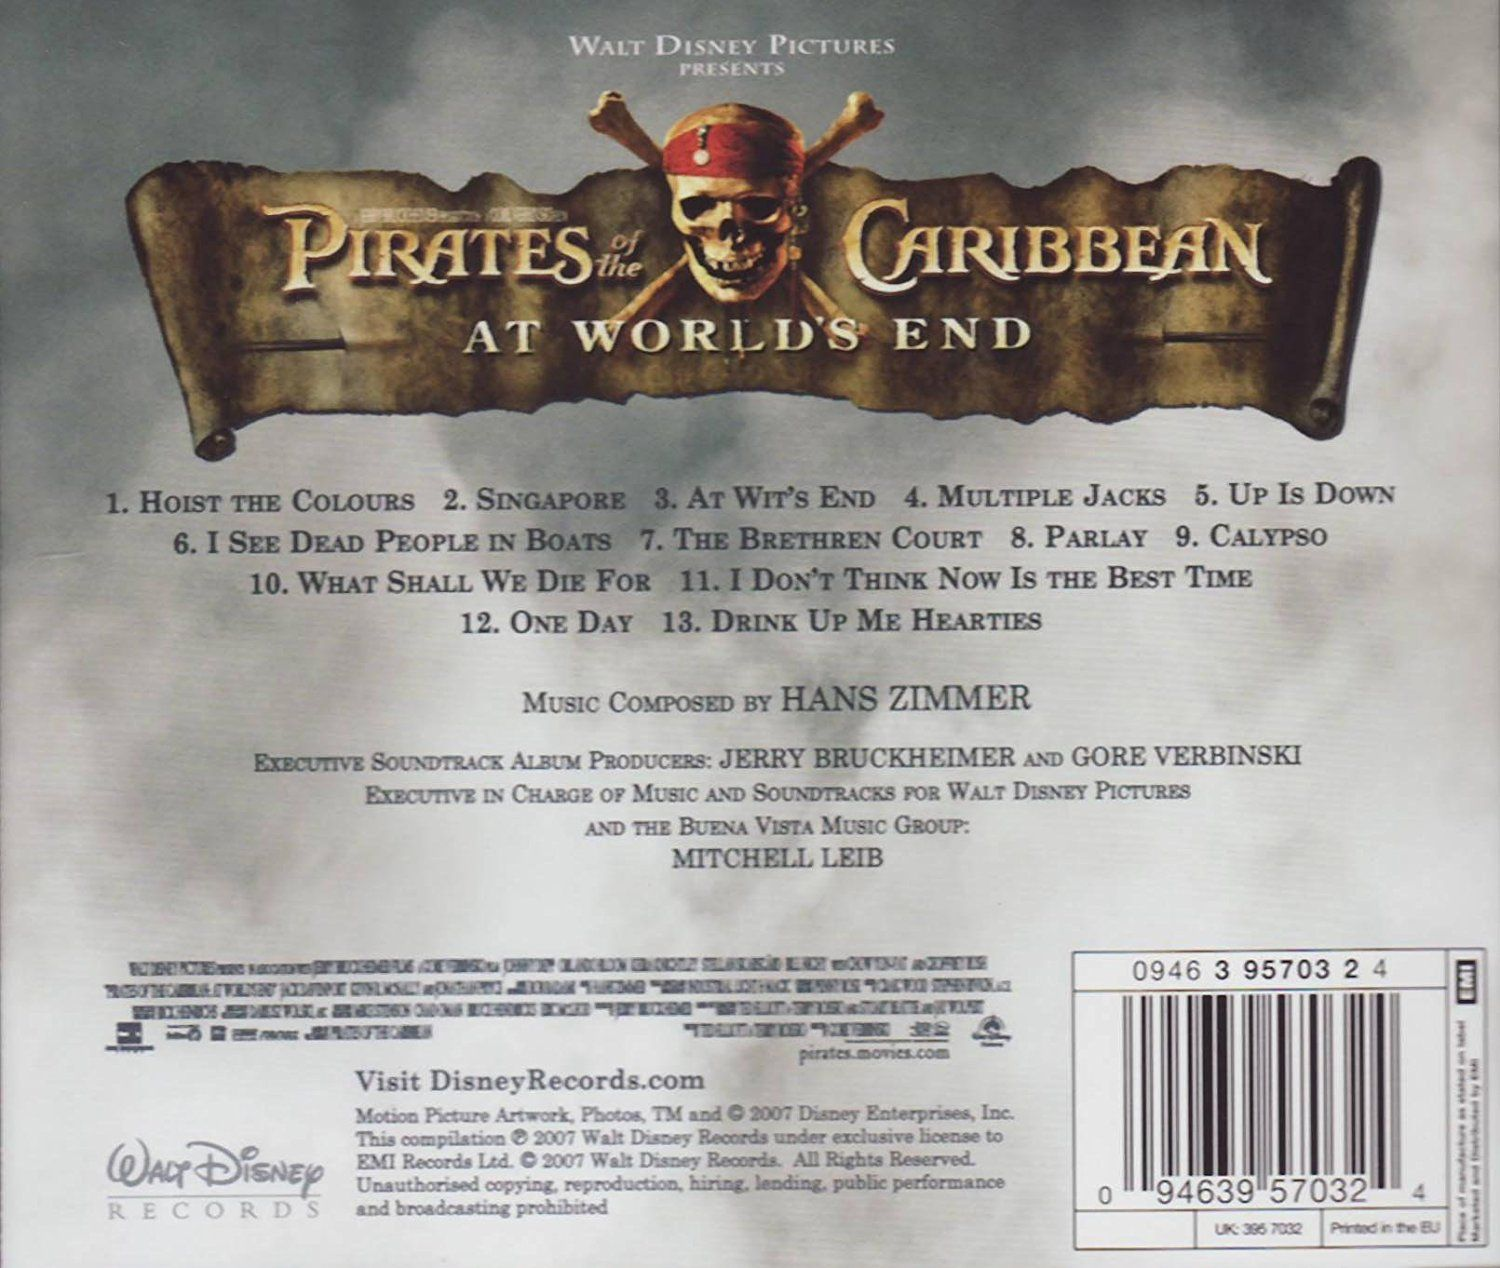 PIRATES OF THE CARIBBEAN 3: AT WORLD'S END - ORIGINAL MOTION